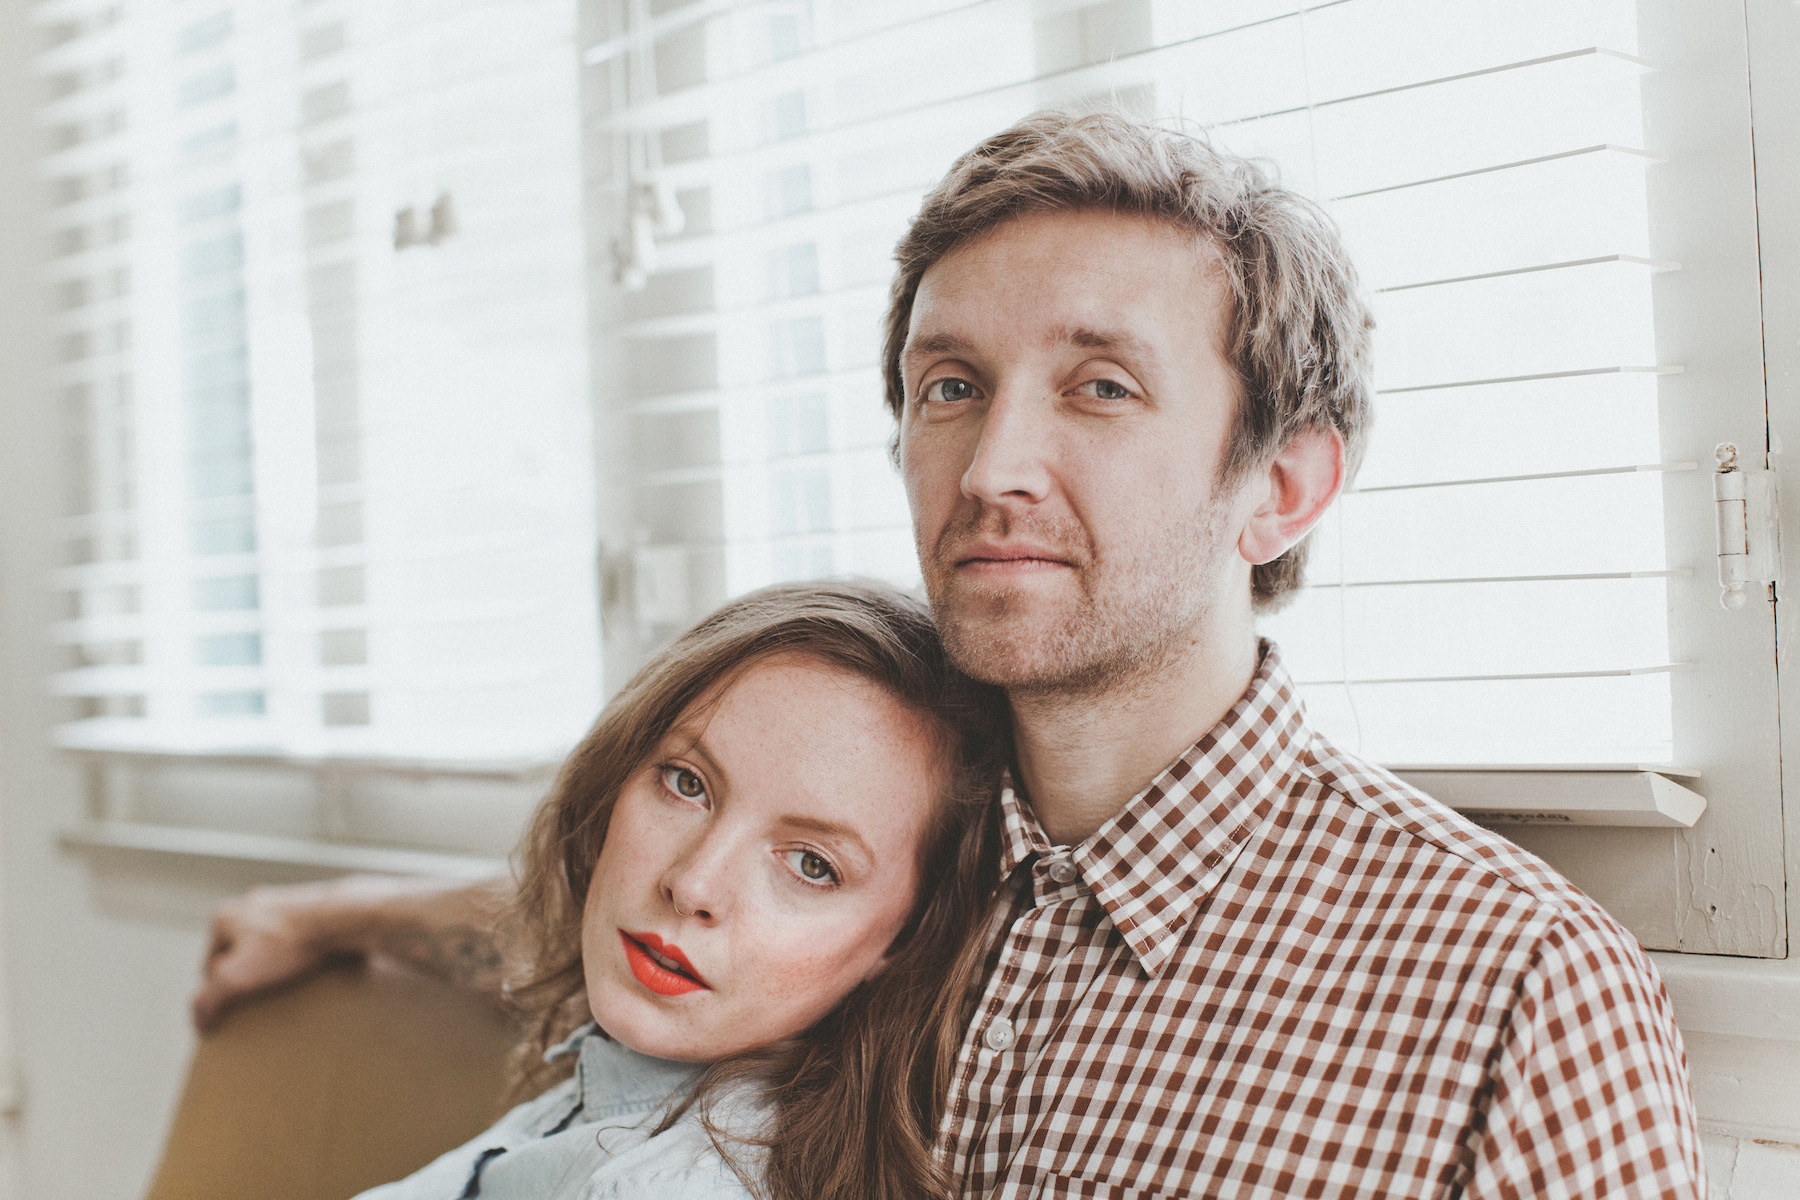 Amelia Meath and Nick Sanborn formed Sylvan Esso in 2013 (Photo via sylvanesso.com)